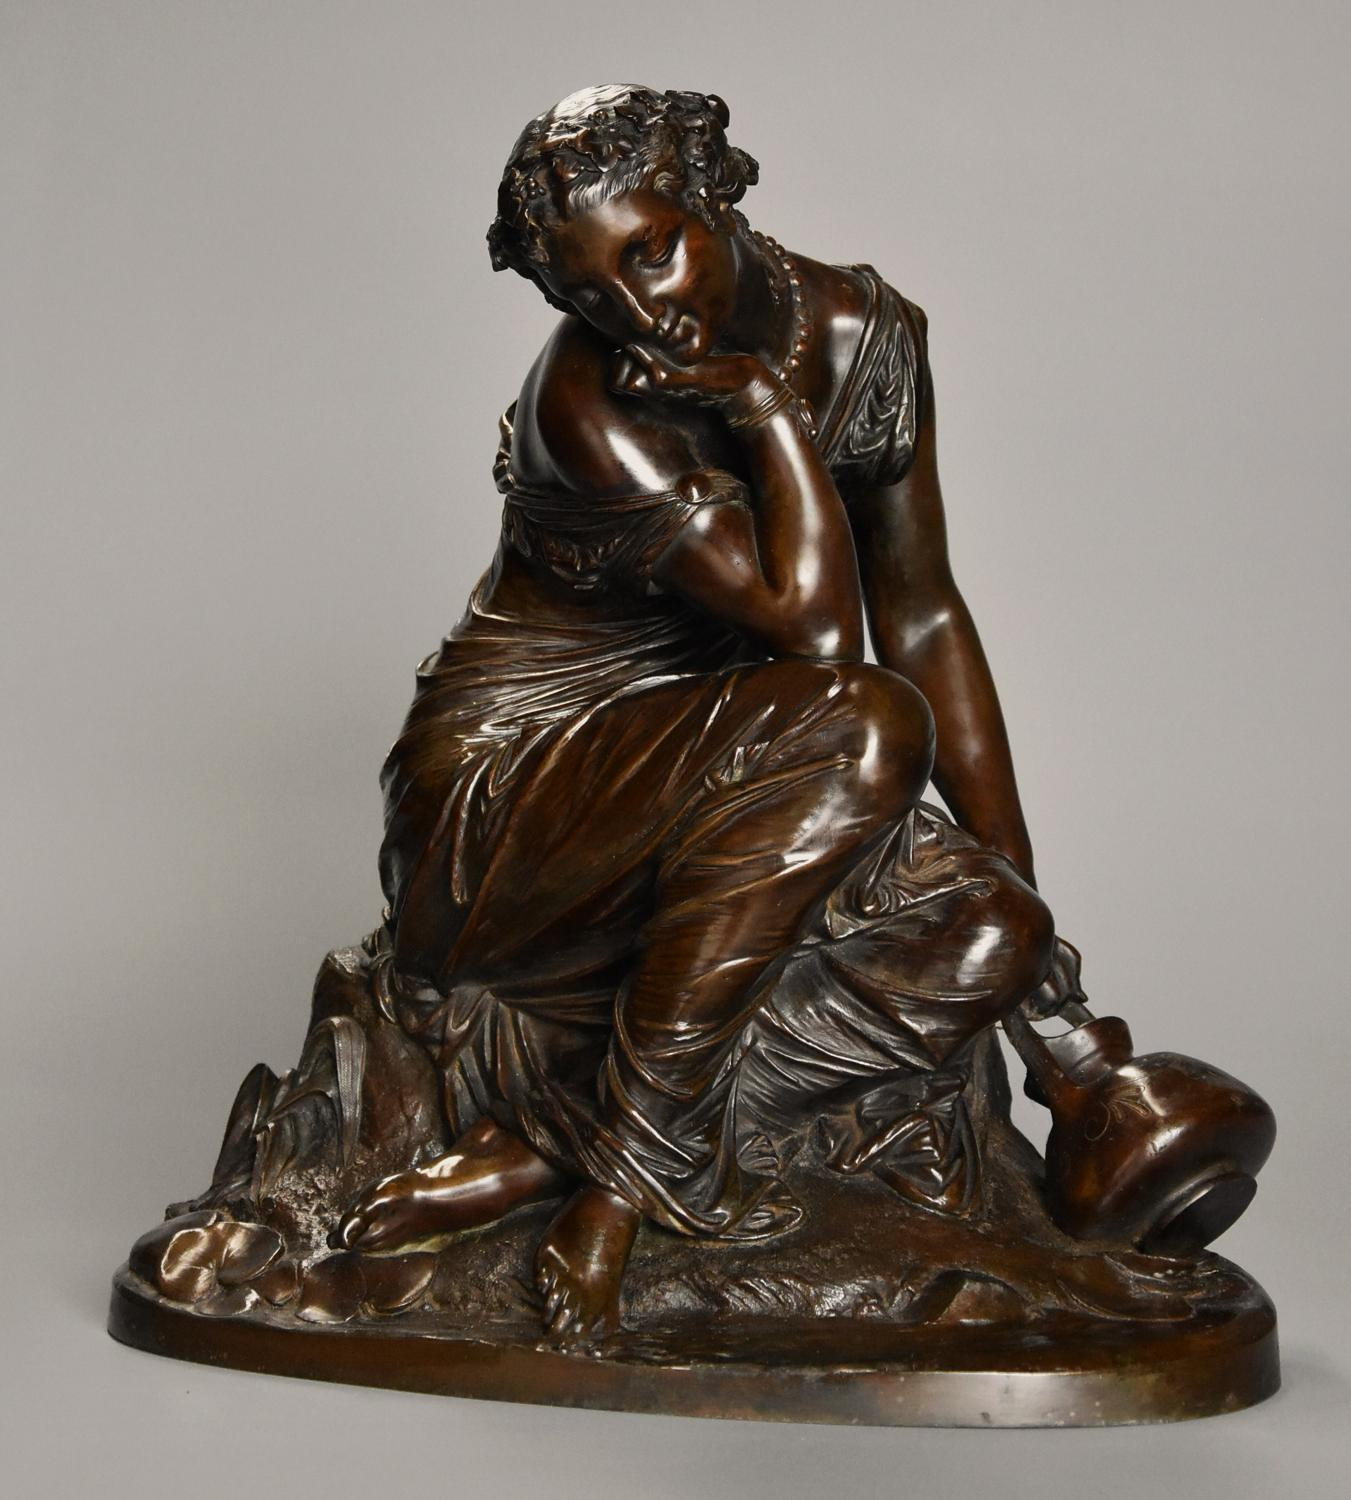 Mid 19th century French bronze 'Reflections' by Alexandre Schoenewerk